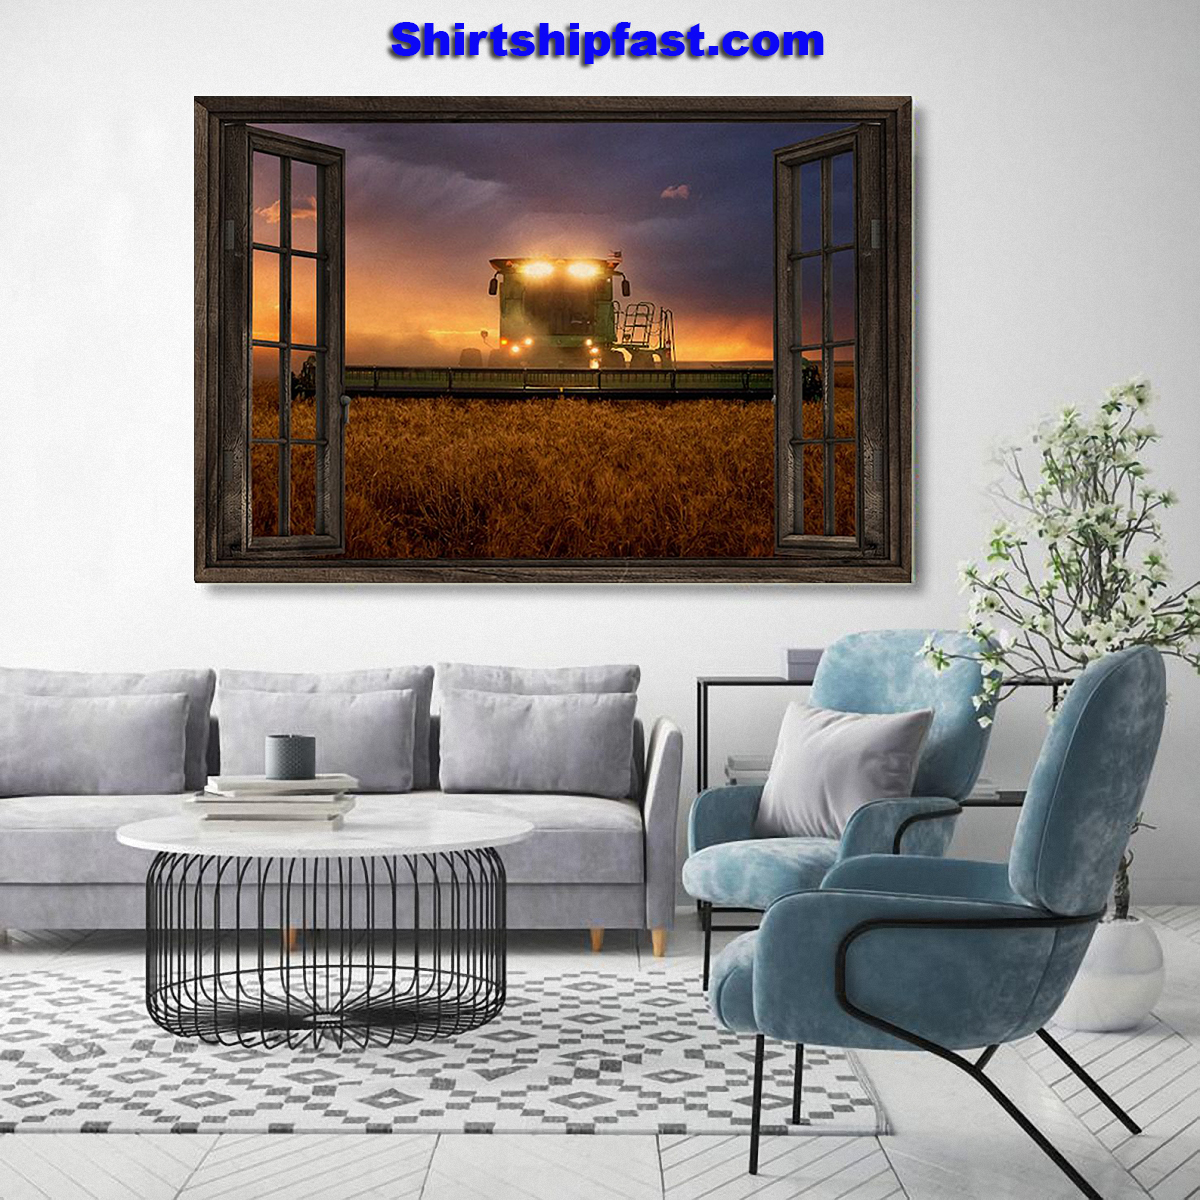 John Deere tractor window view poster - Picture 2